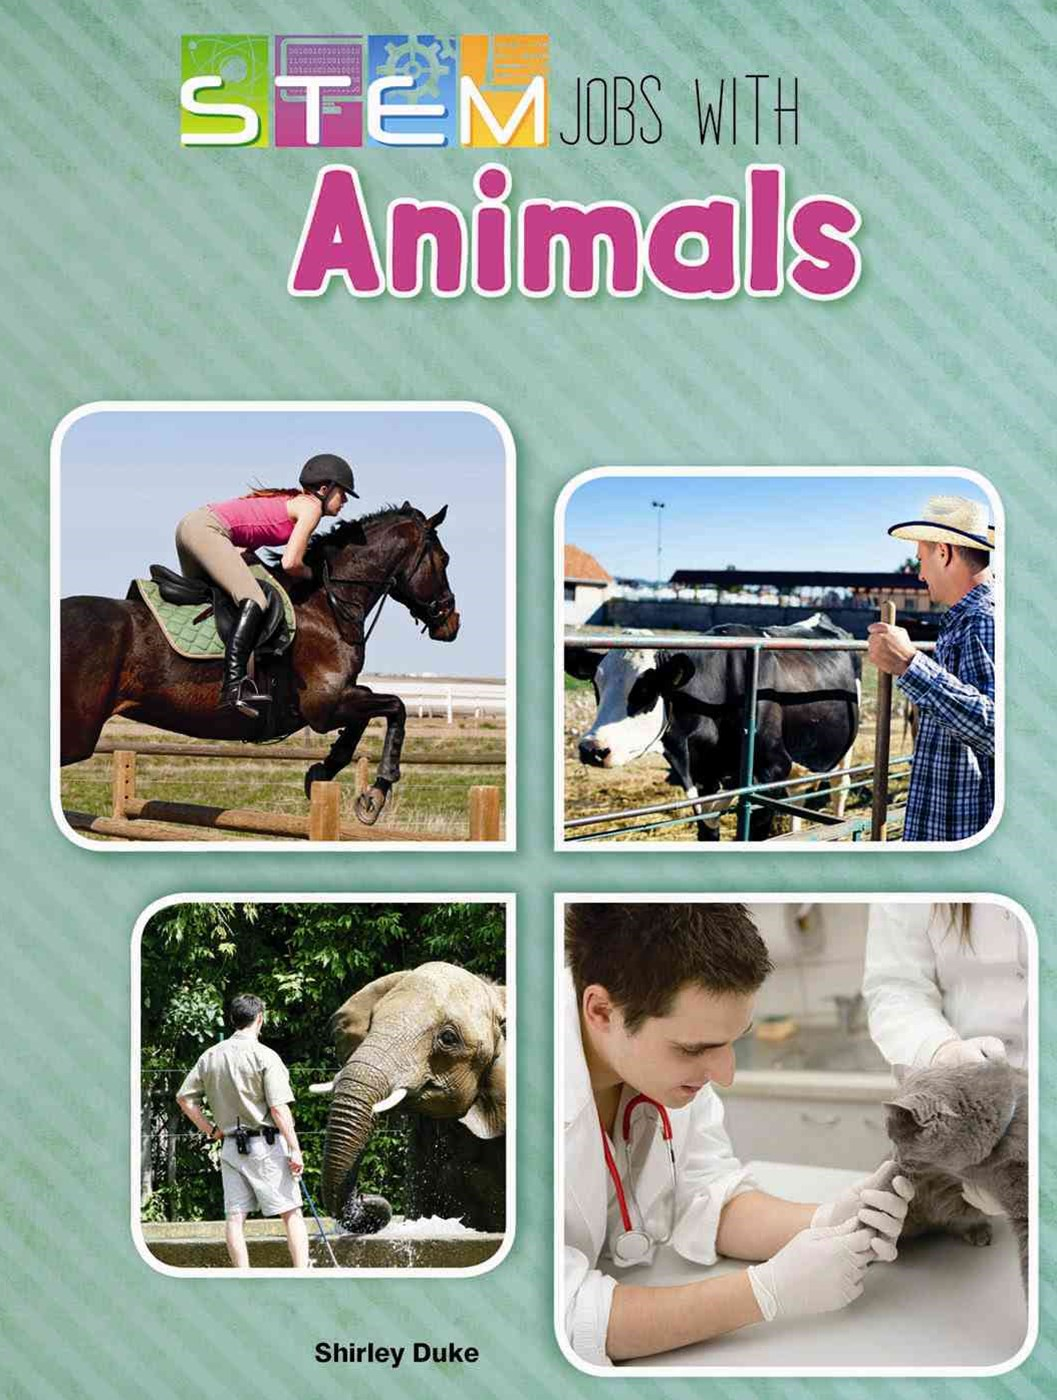 STEM Jobs with Animals